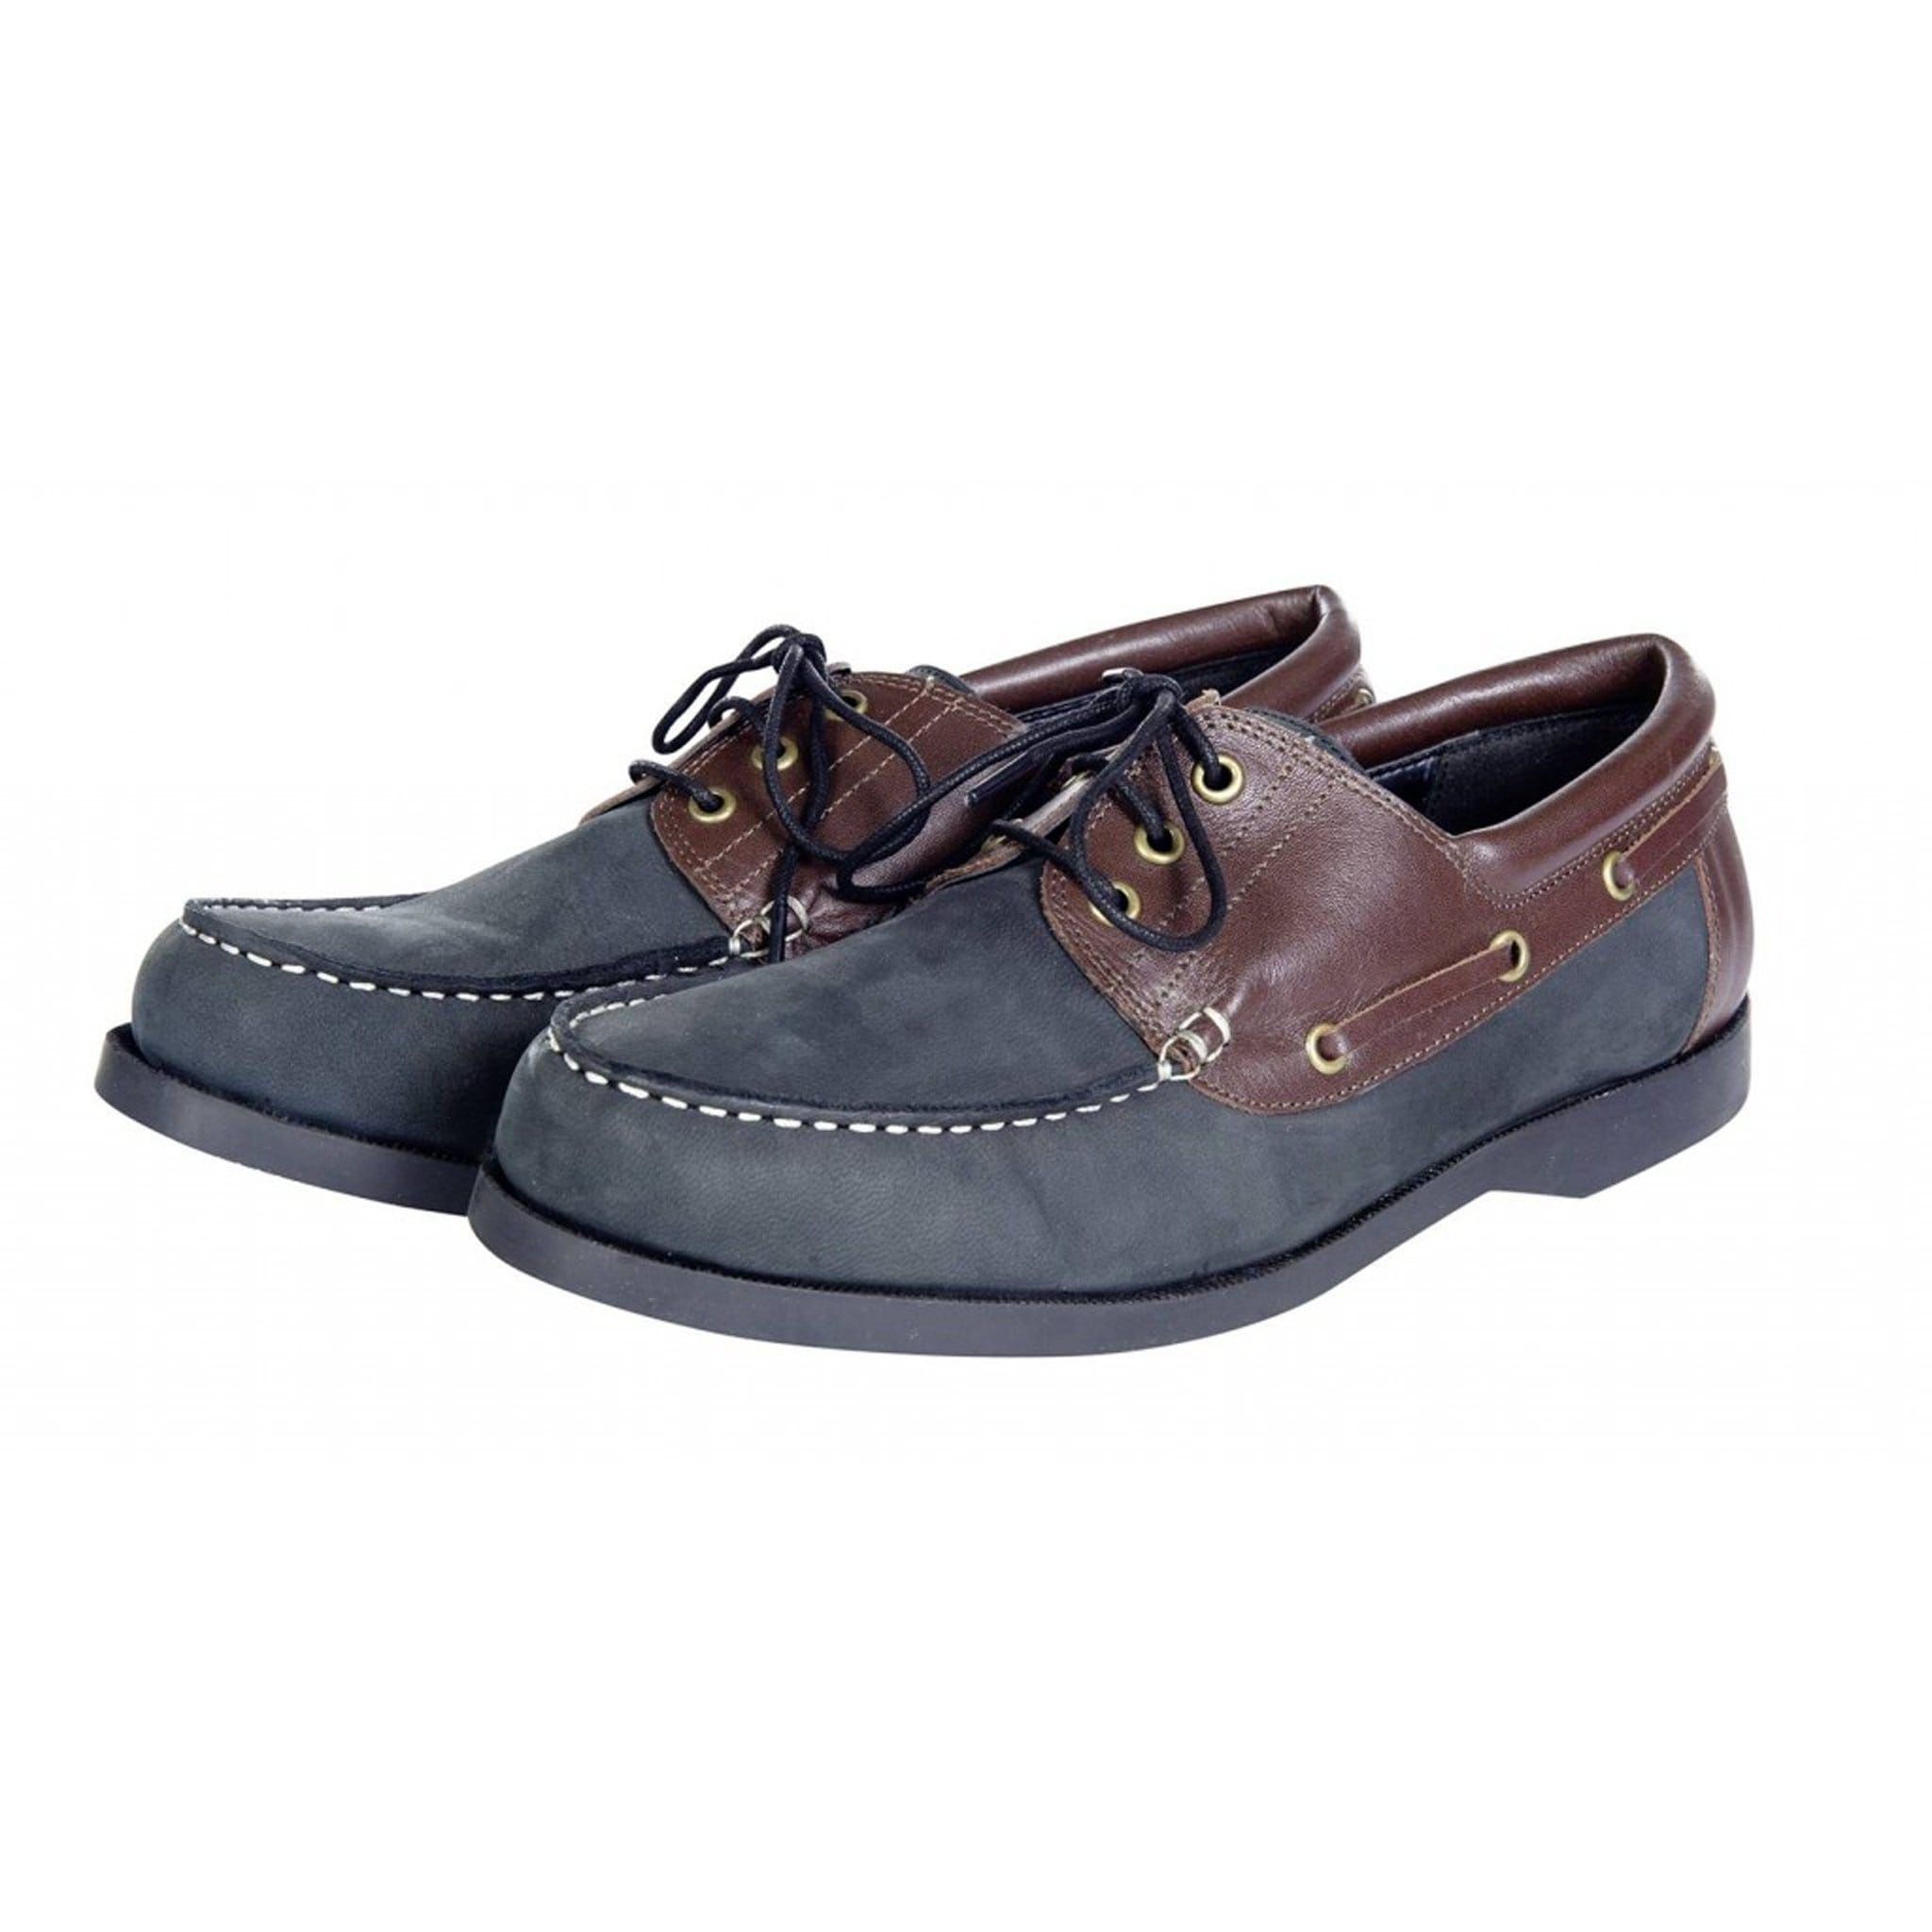 10042 HKM Marbella Boat Shoes Front View